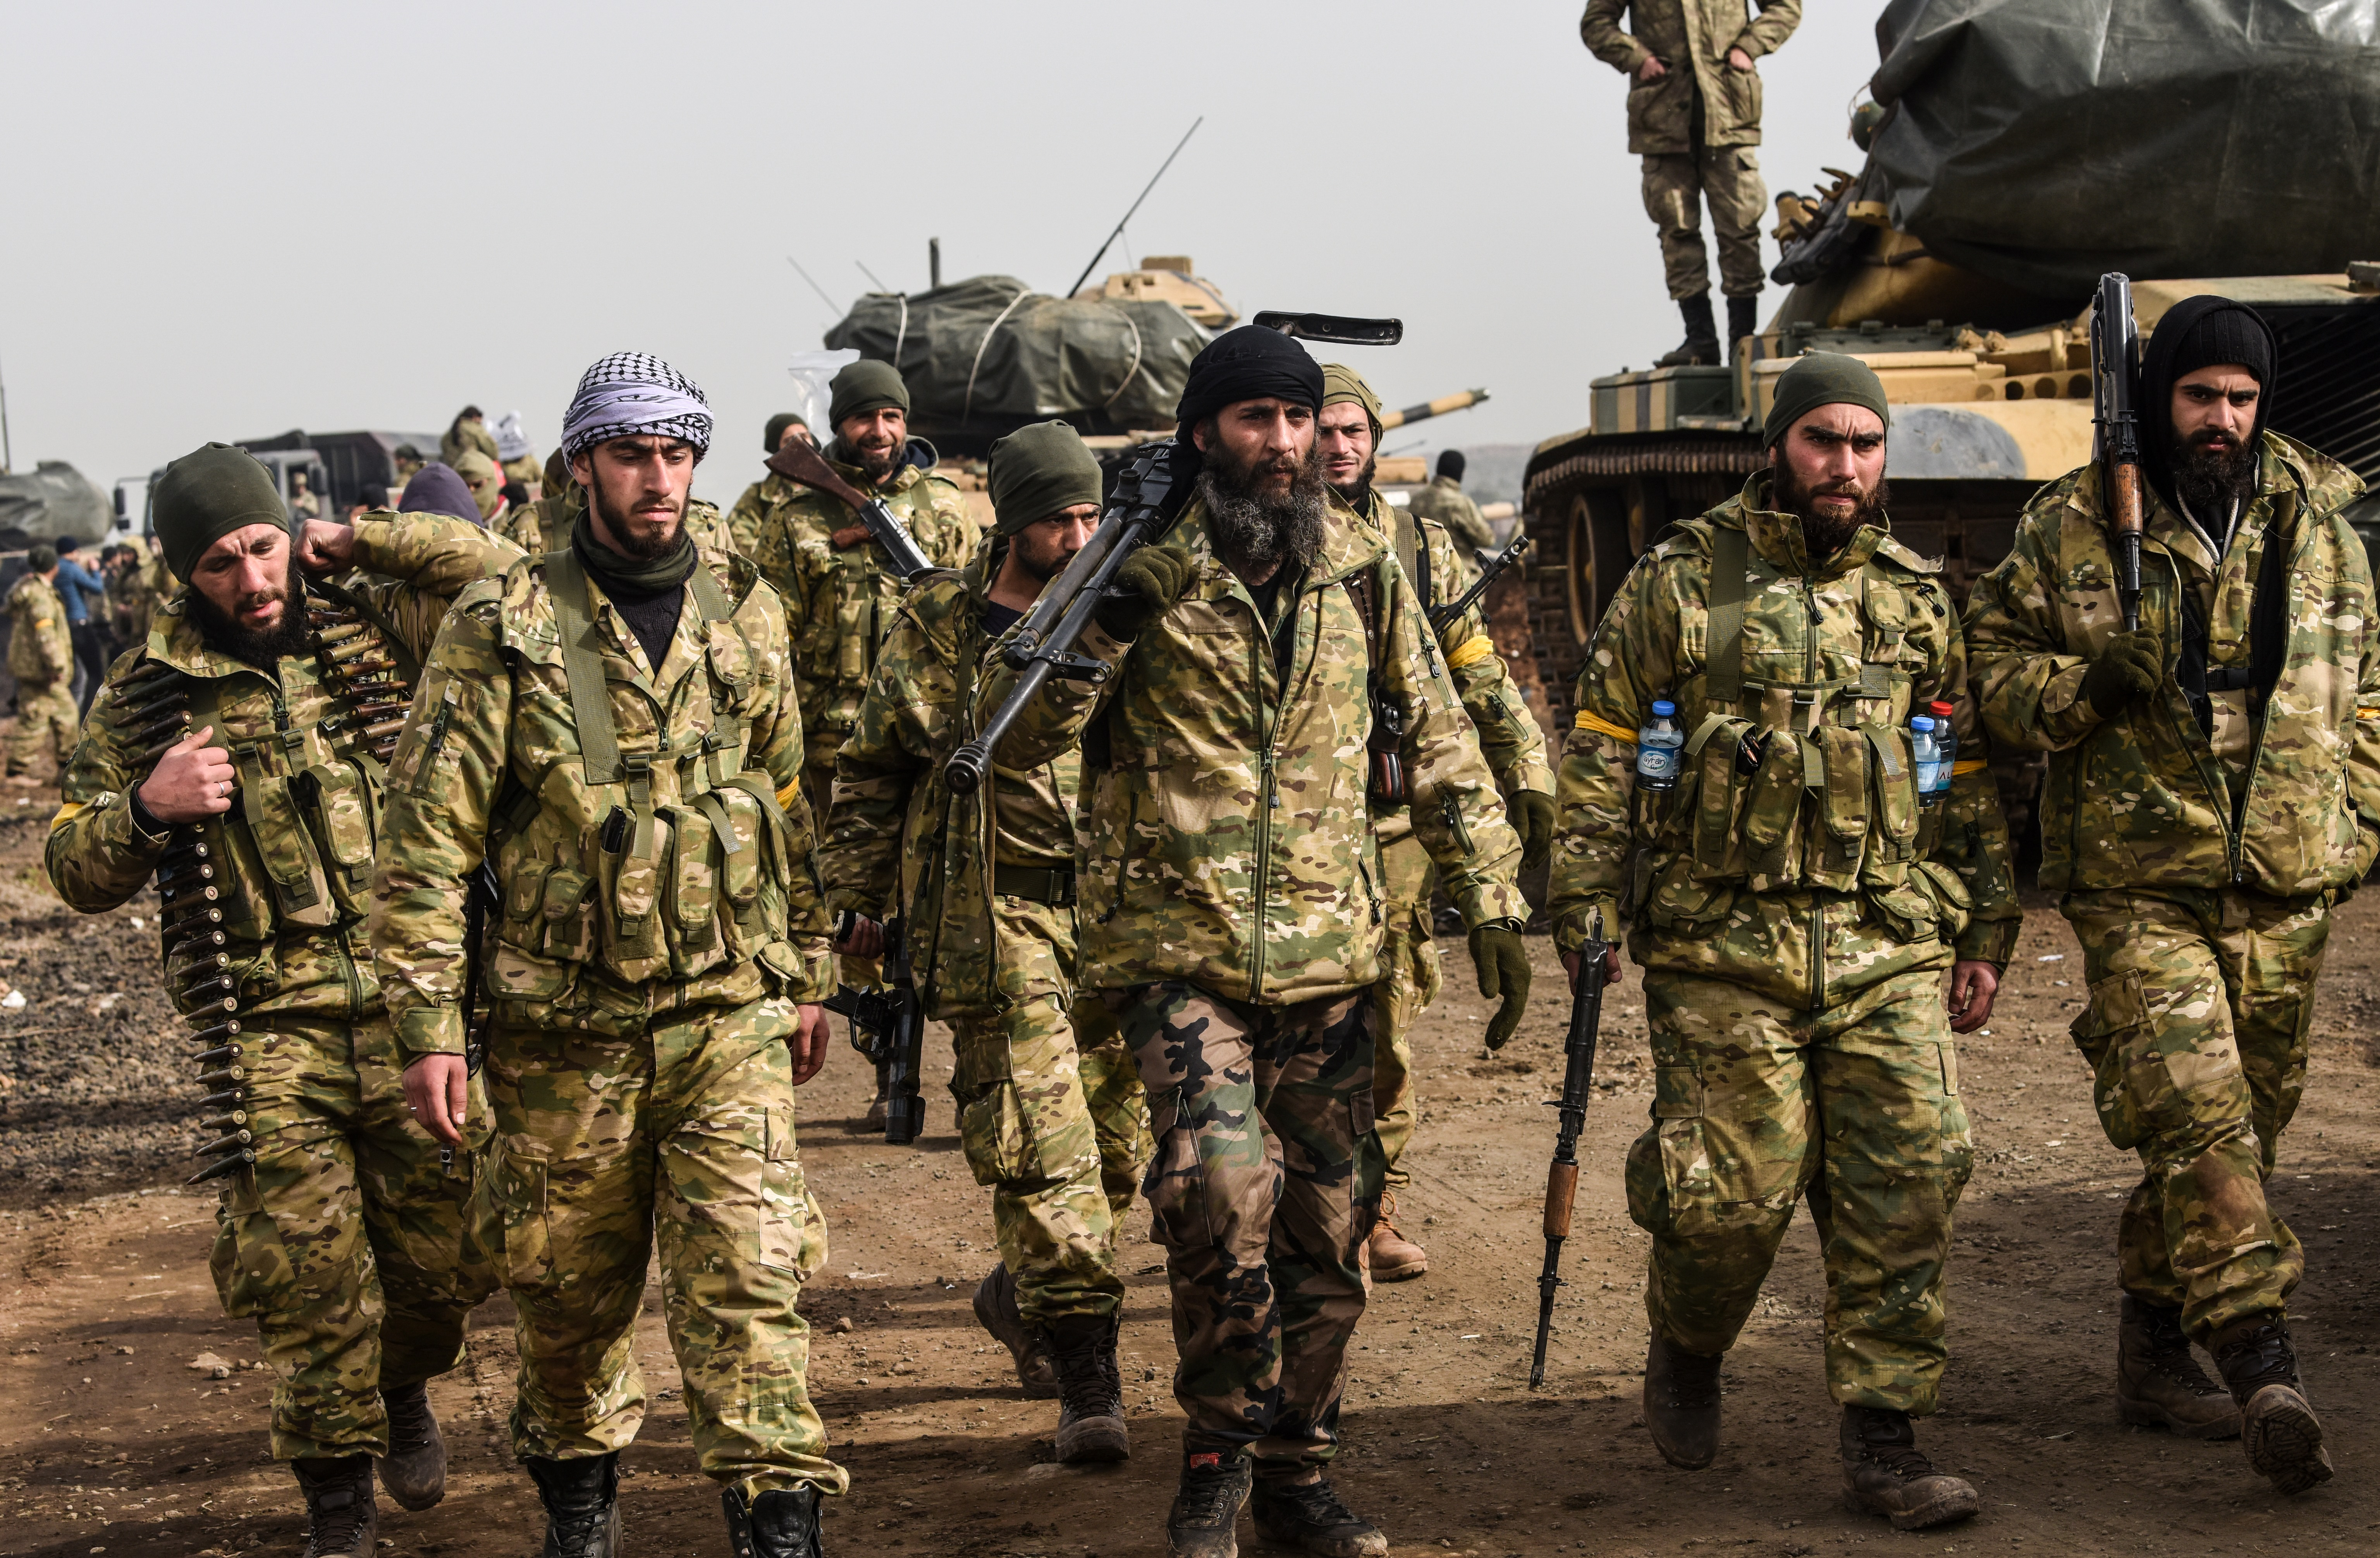 Syrian opposition fighters backed by Turkey walk in front of Turkish troops near the Syria border at Hassa, Hatay province on Jan. 22, 2018.